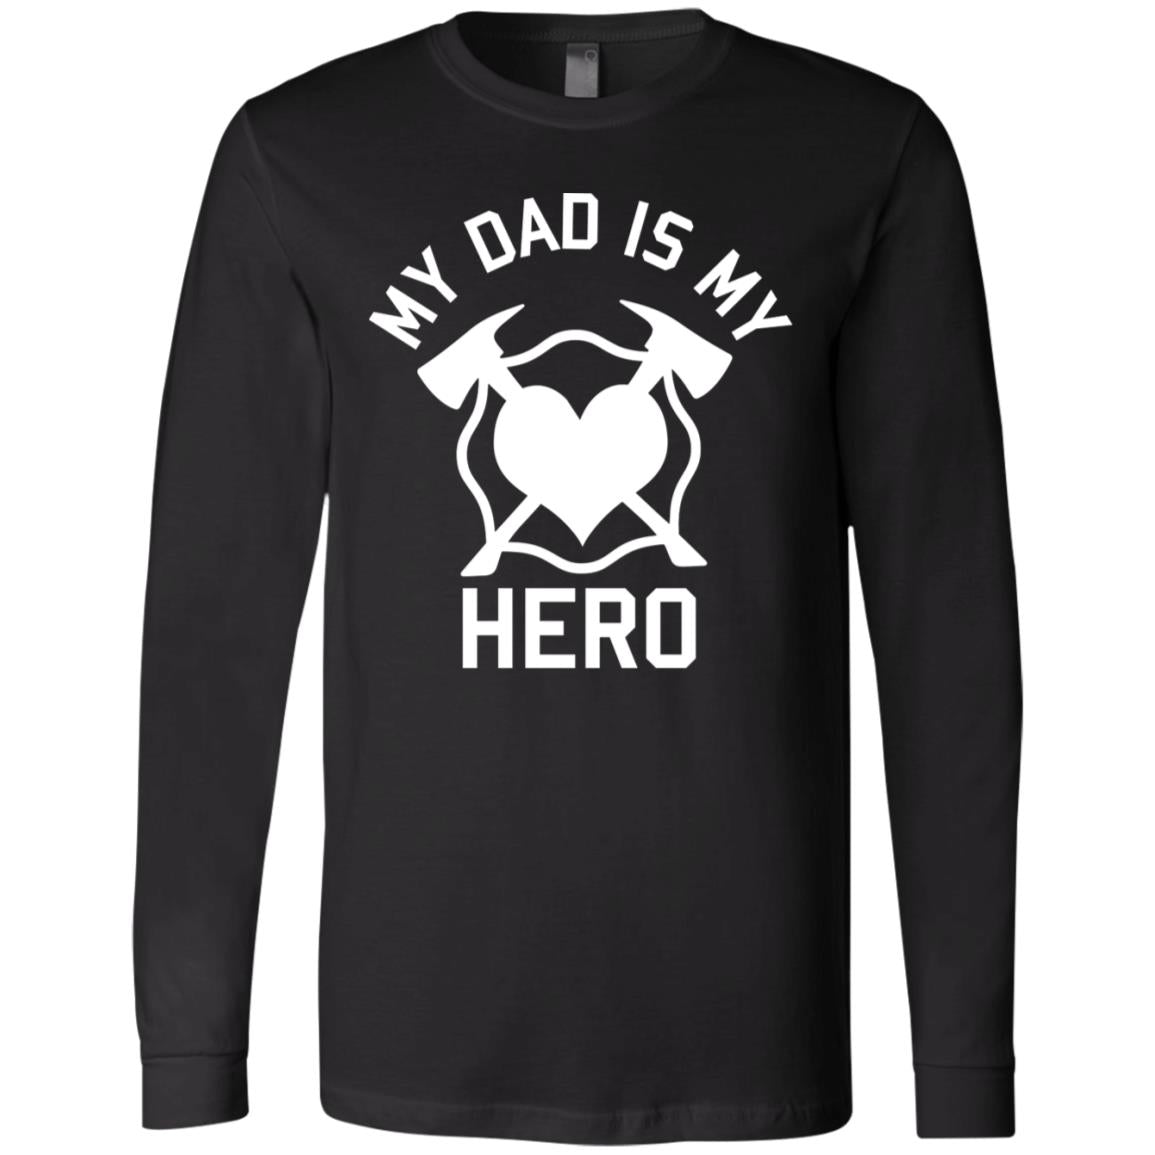 Dad is my Hero (Men's Cut) LS T-Shirt by Bella + Canvas